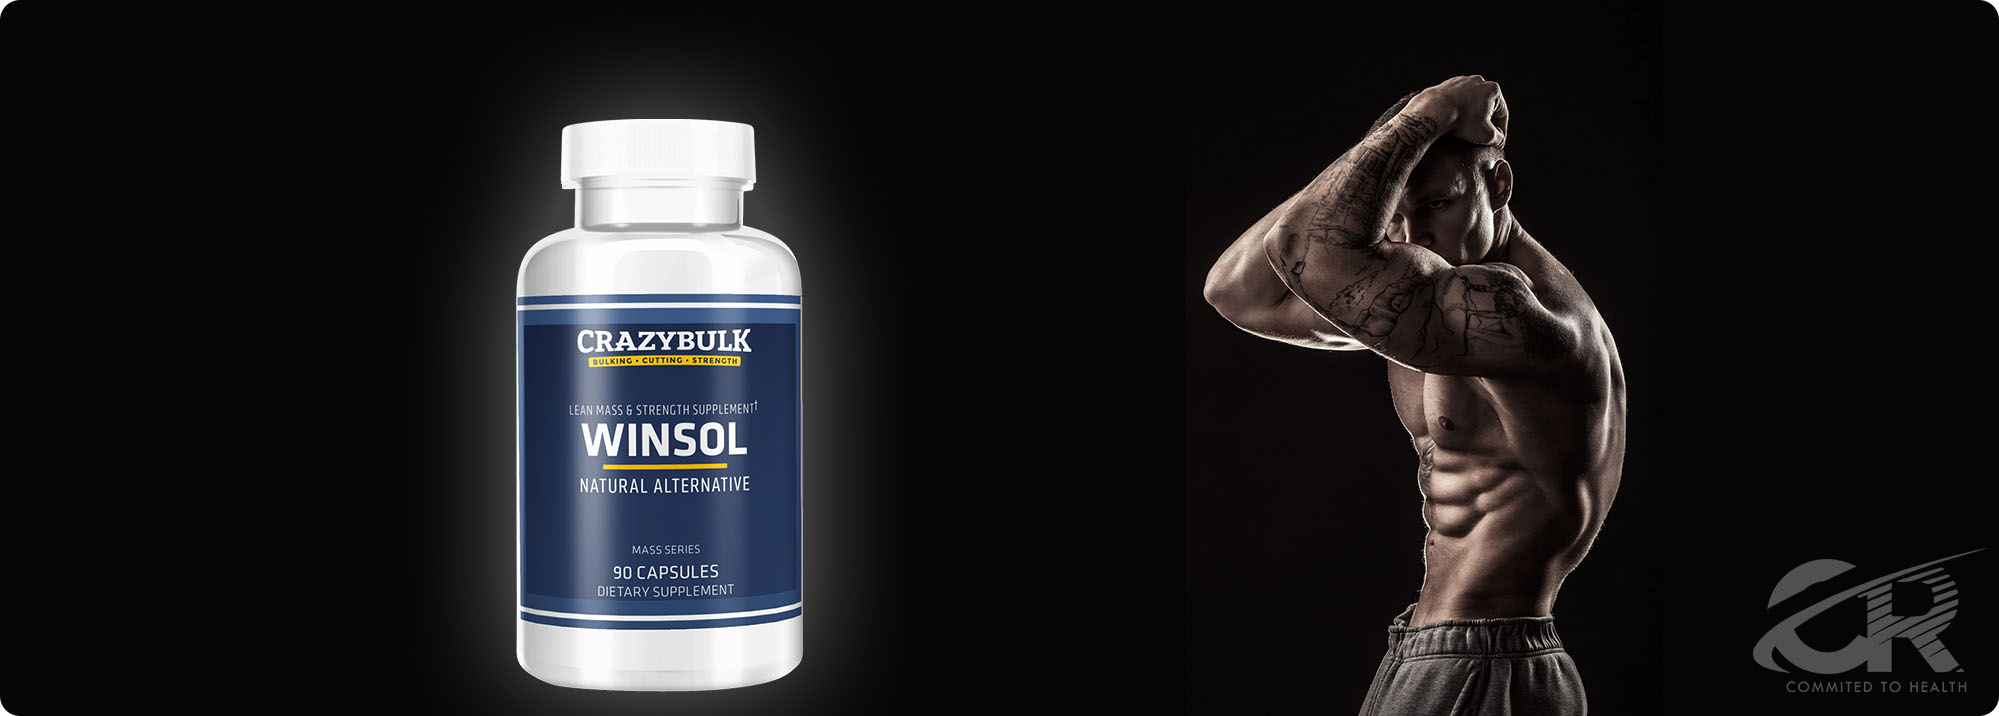 Winsol Review - Legal Steroid